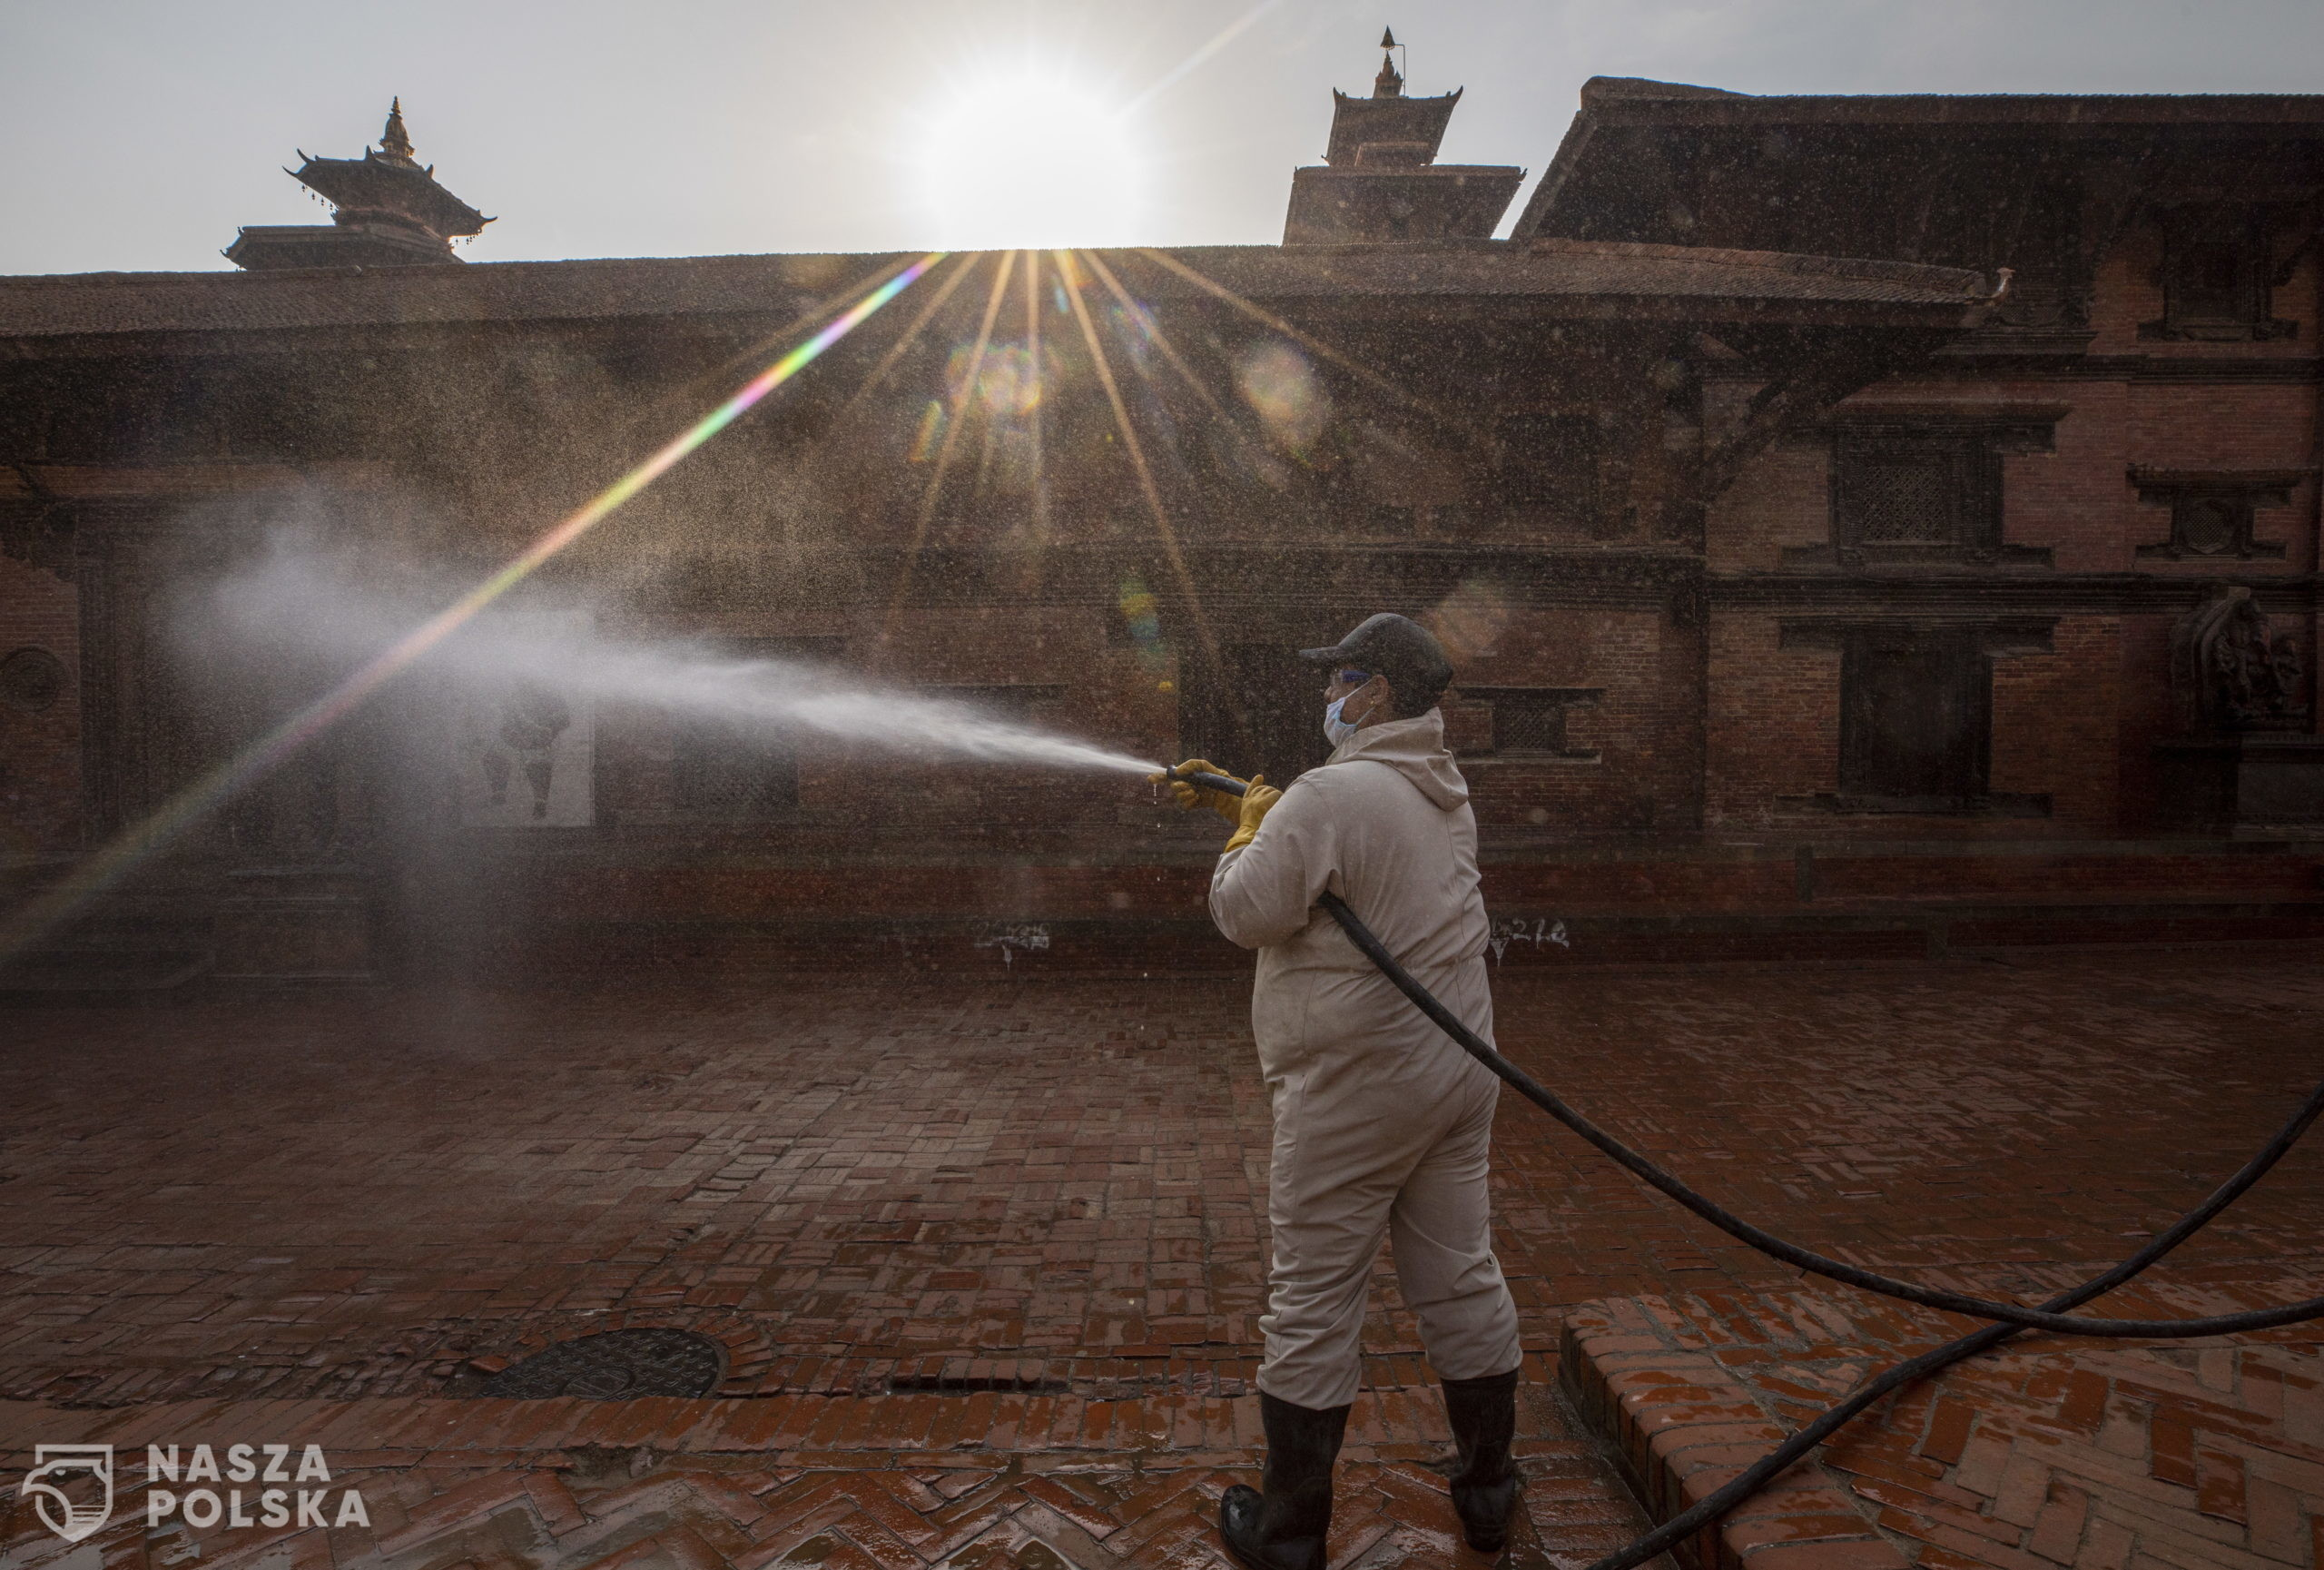 epaselect epa08349745 A Lalitpur metropolitan city worker disinfects Patan Durbar Square, a UNESCO world heritage site, during a nationwide emergency lock down, in Lalitpur, Nepal, 08 April 2020. Nepal is under a nationwide lockdown in an effort to combat the spread of the coronavirus and COVID-19 disease pandemic  EPA/NARENDRA SHRESTHA  Dostawca: PAP/EPA.